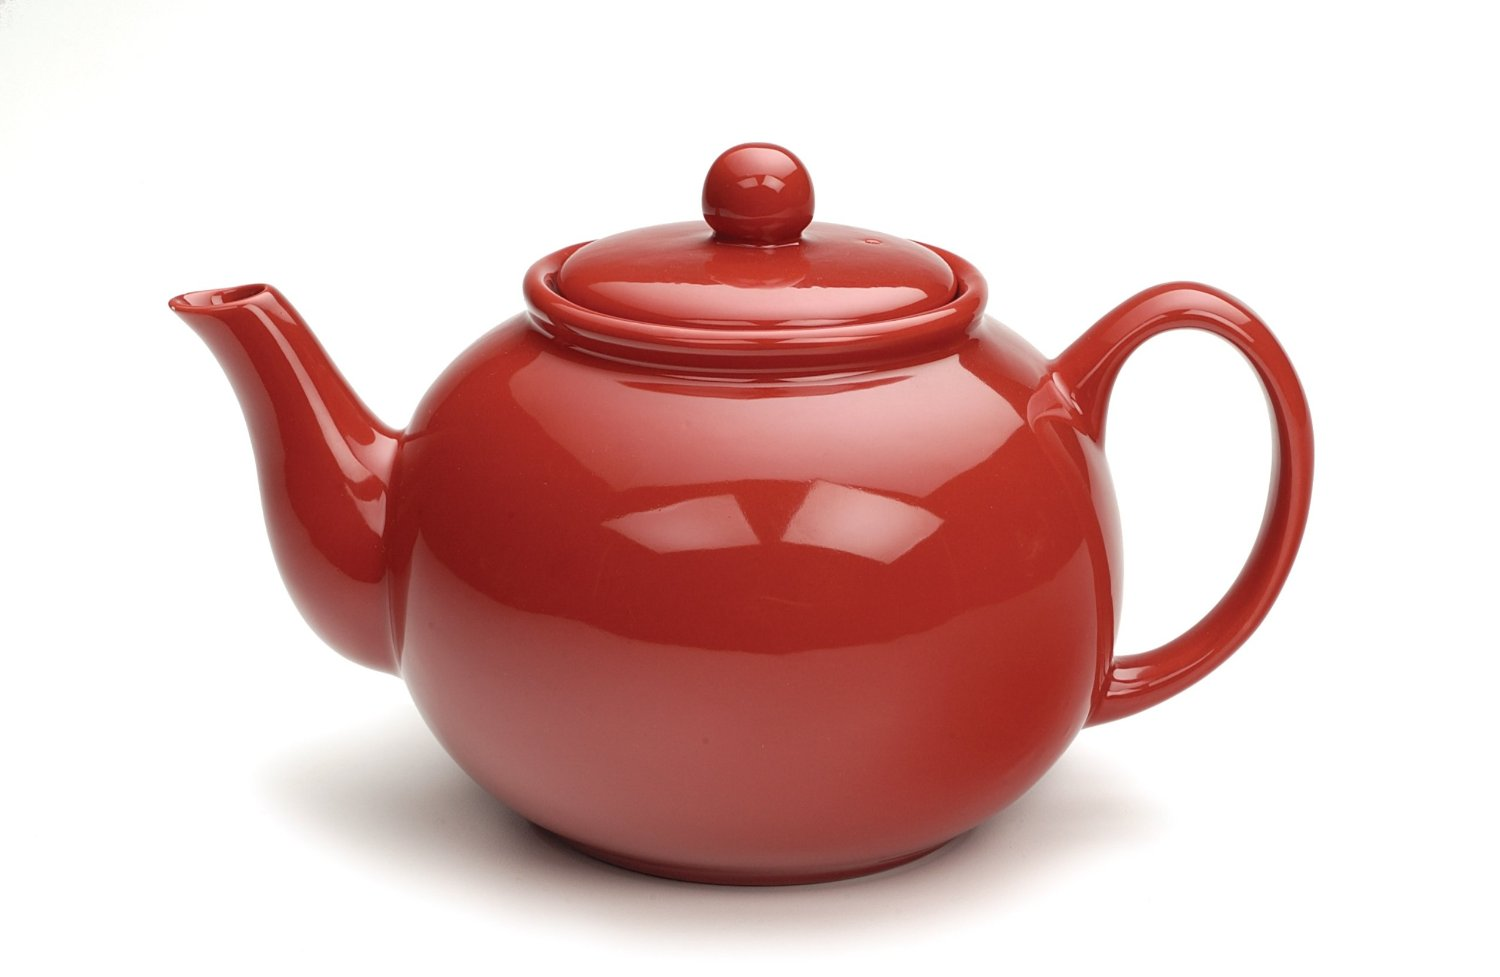 Looking For Teapots Is This You Is This Them The Algorithmic Gaze Again